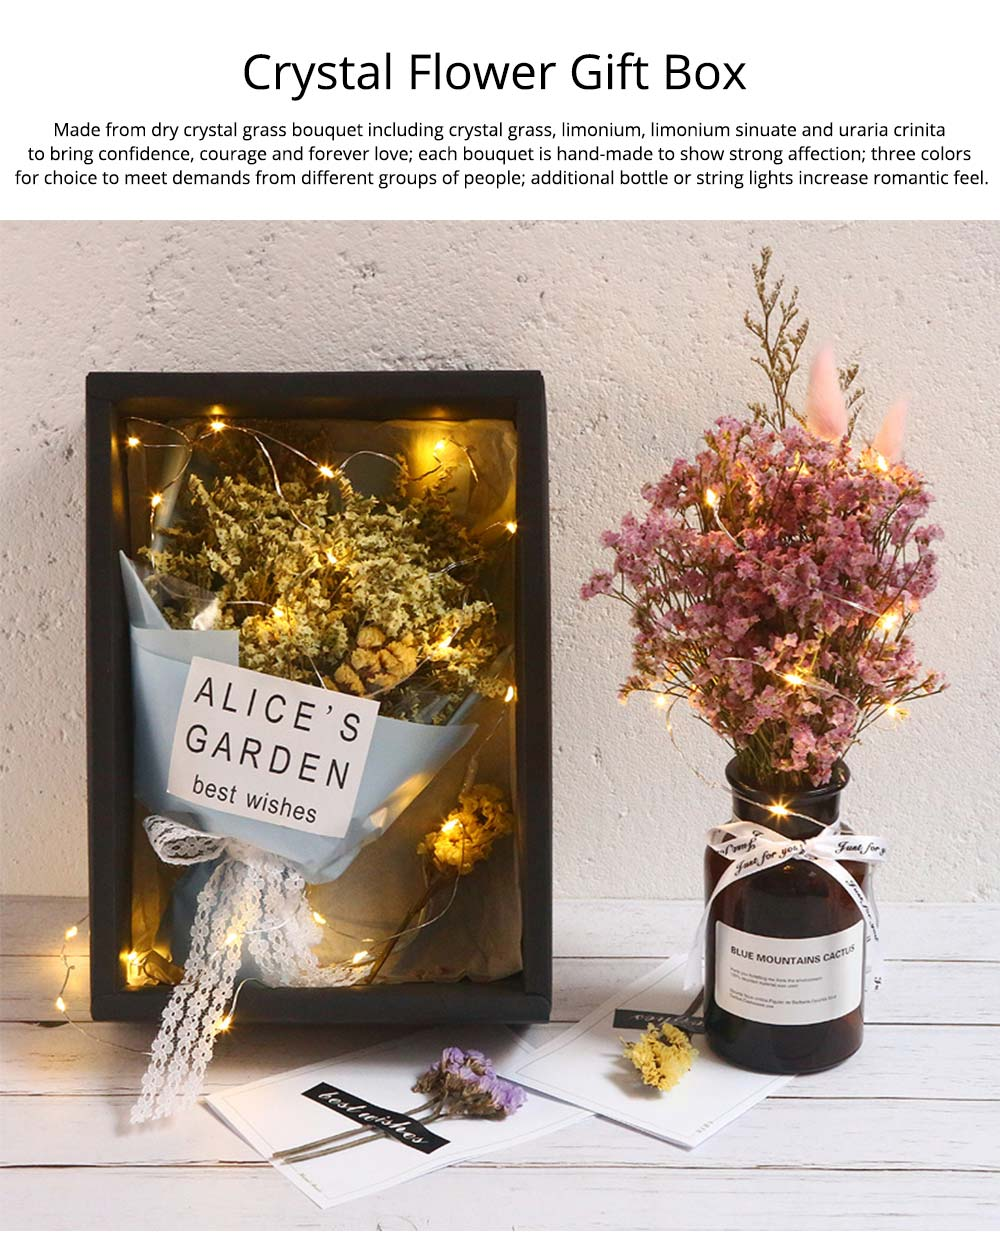 DIY Creative Preserved Fresh Flower, Dry Crystal Grass Bouquet with String Lights, Fresh Romantic Dry Flower for Birthday New Year Valentine's Day 0